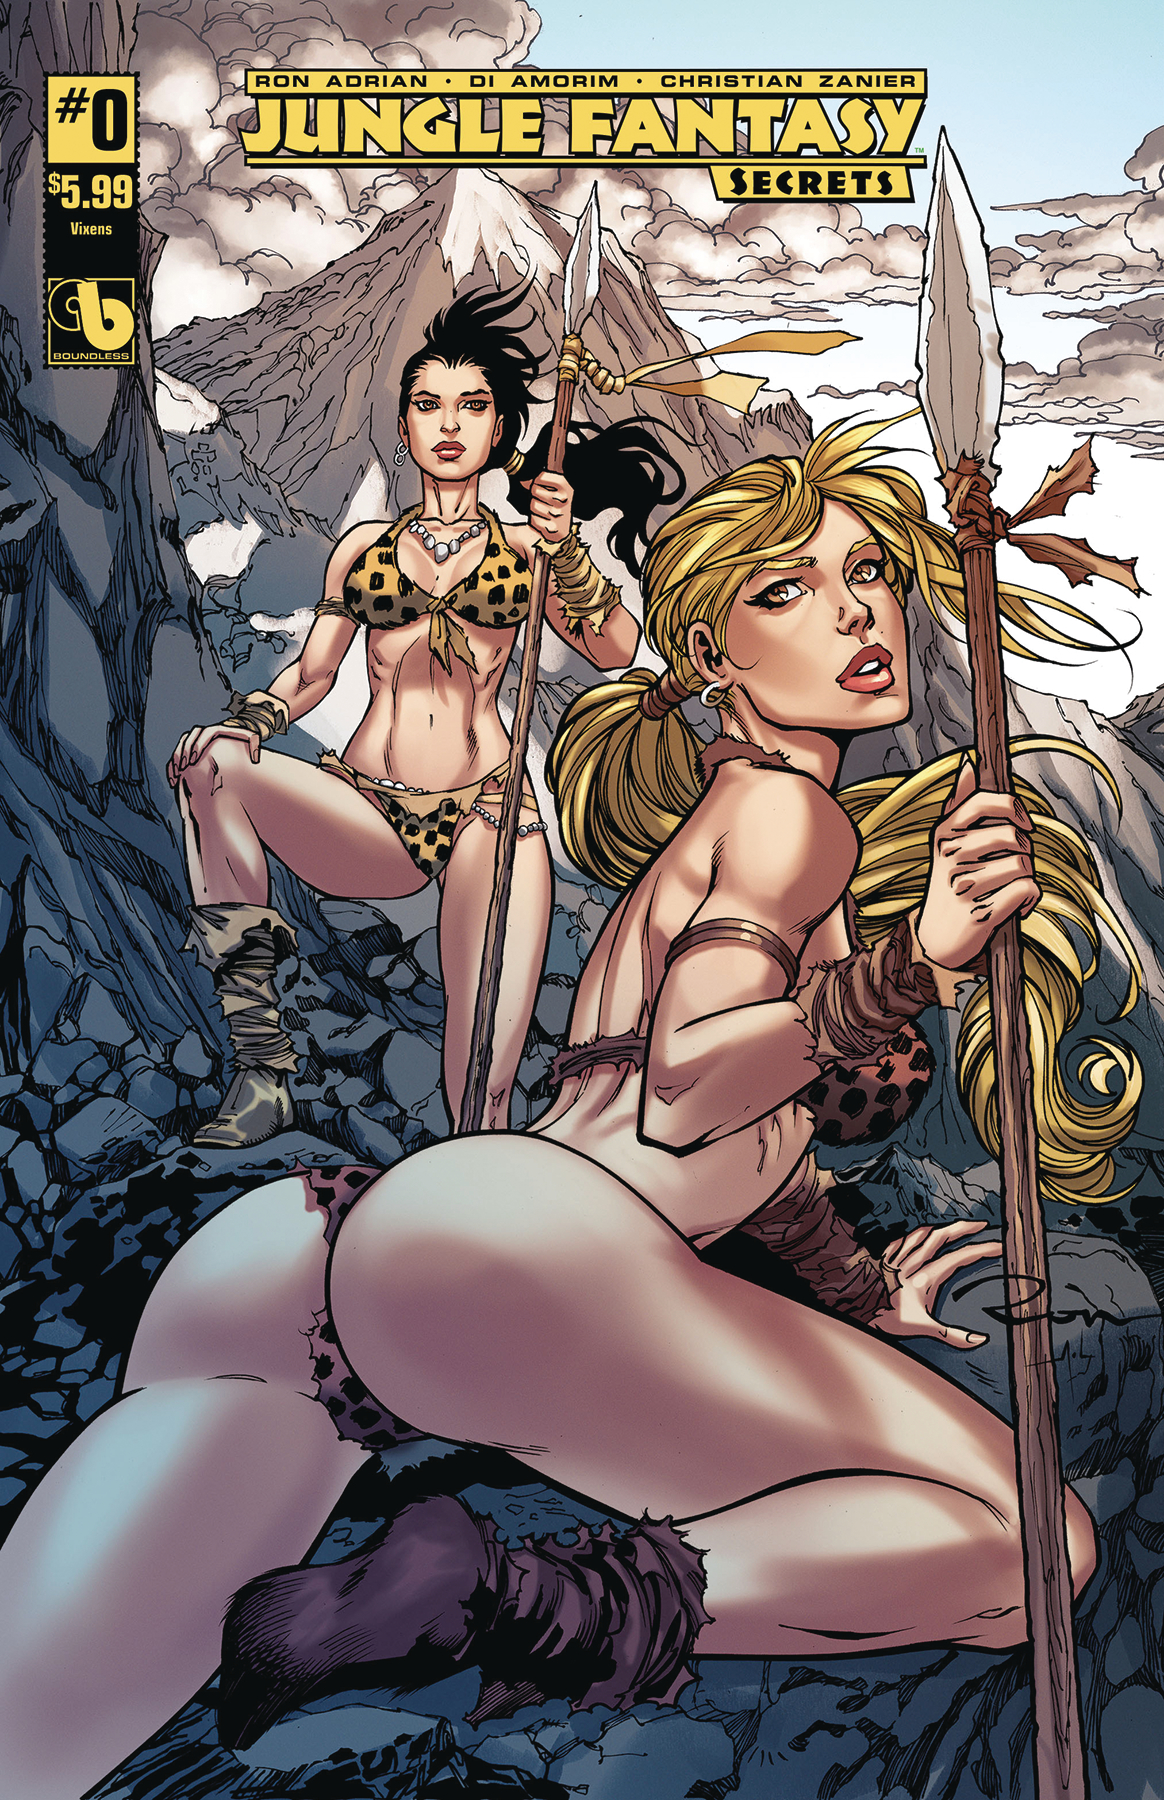 JUNGLE FANTASY SECRETS #0 VIXENS (MR)